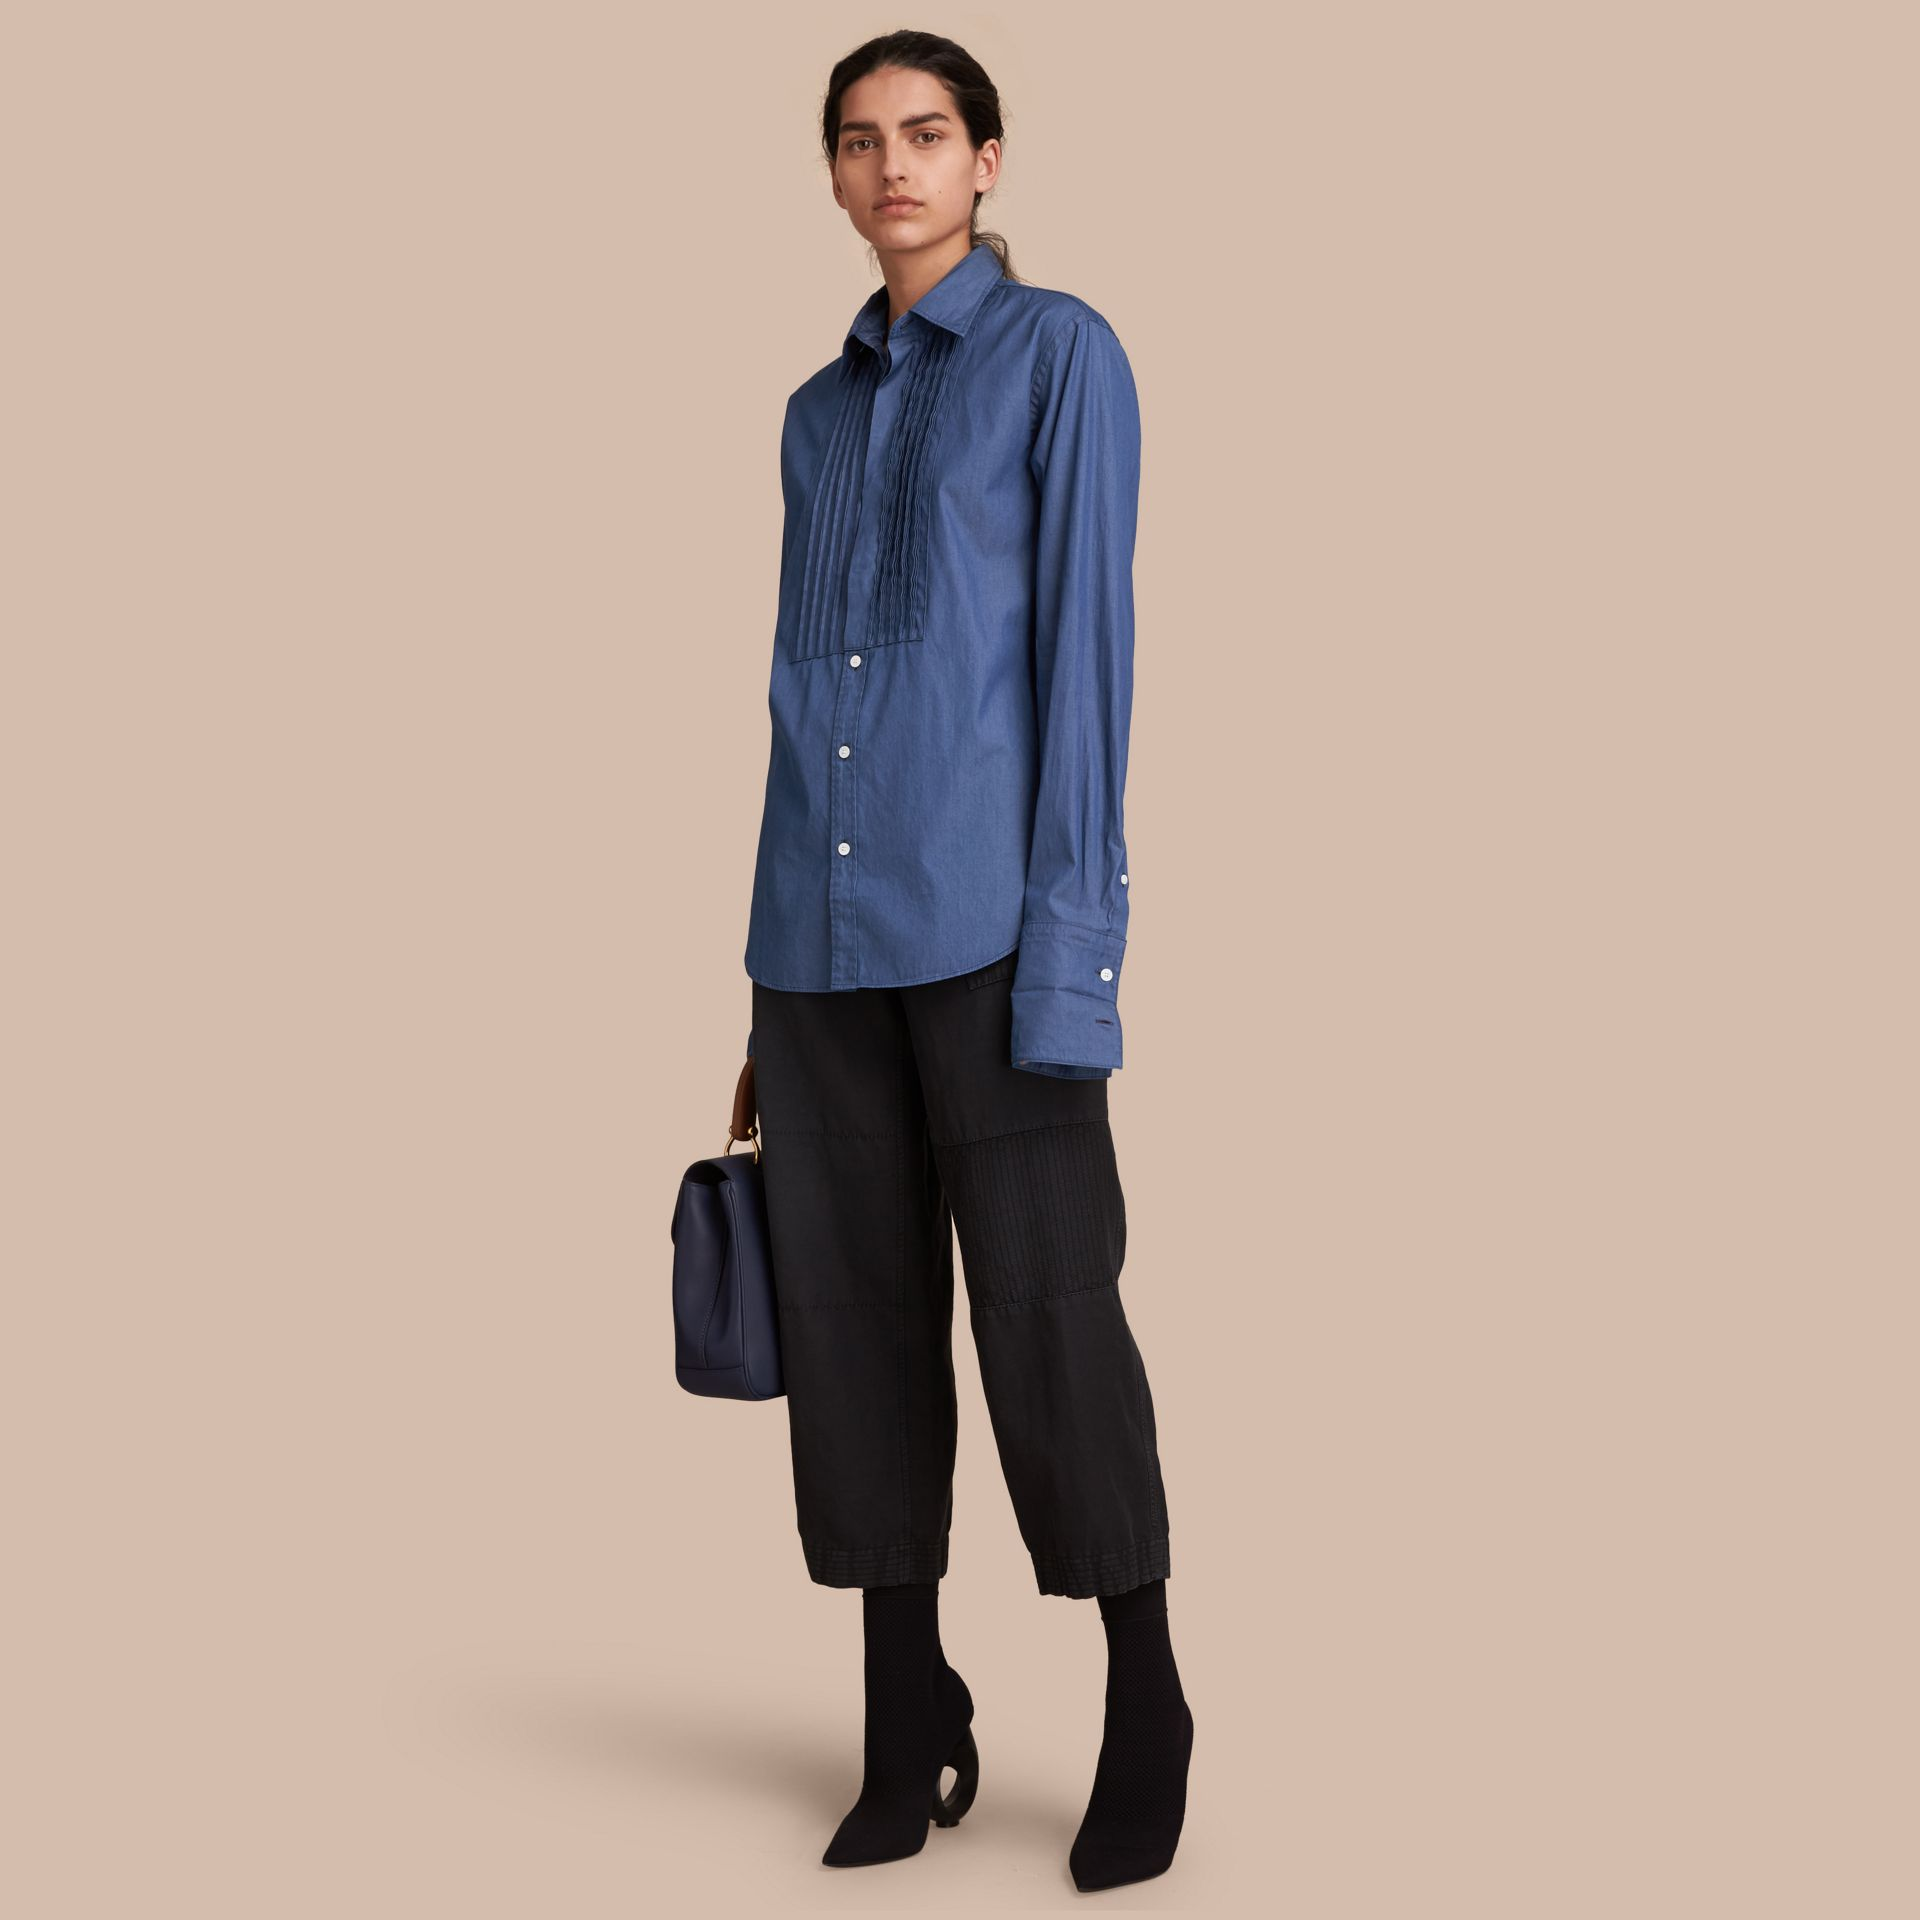 Unisex Double-cuff Pintuck Bib Cotton Shirt in Denim Blue - Women | Burberry - gallery image 1